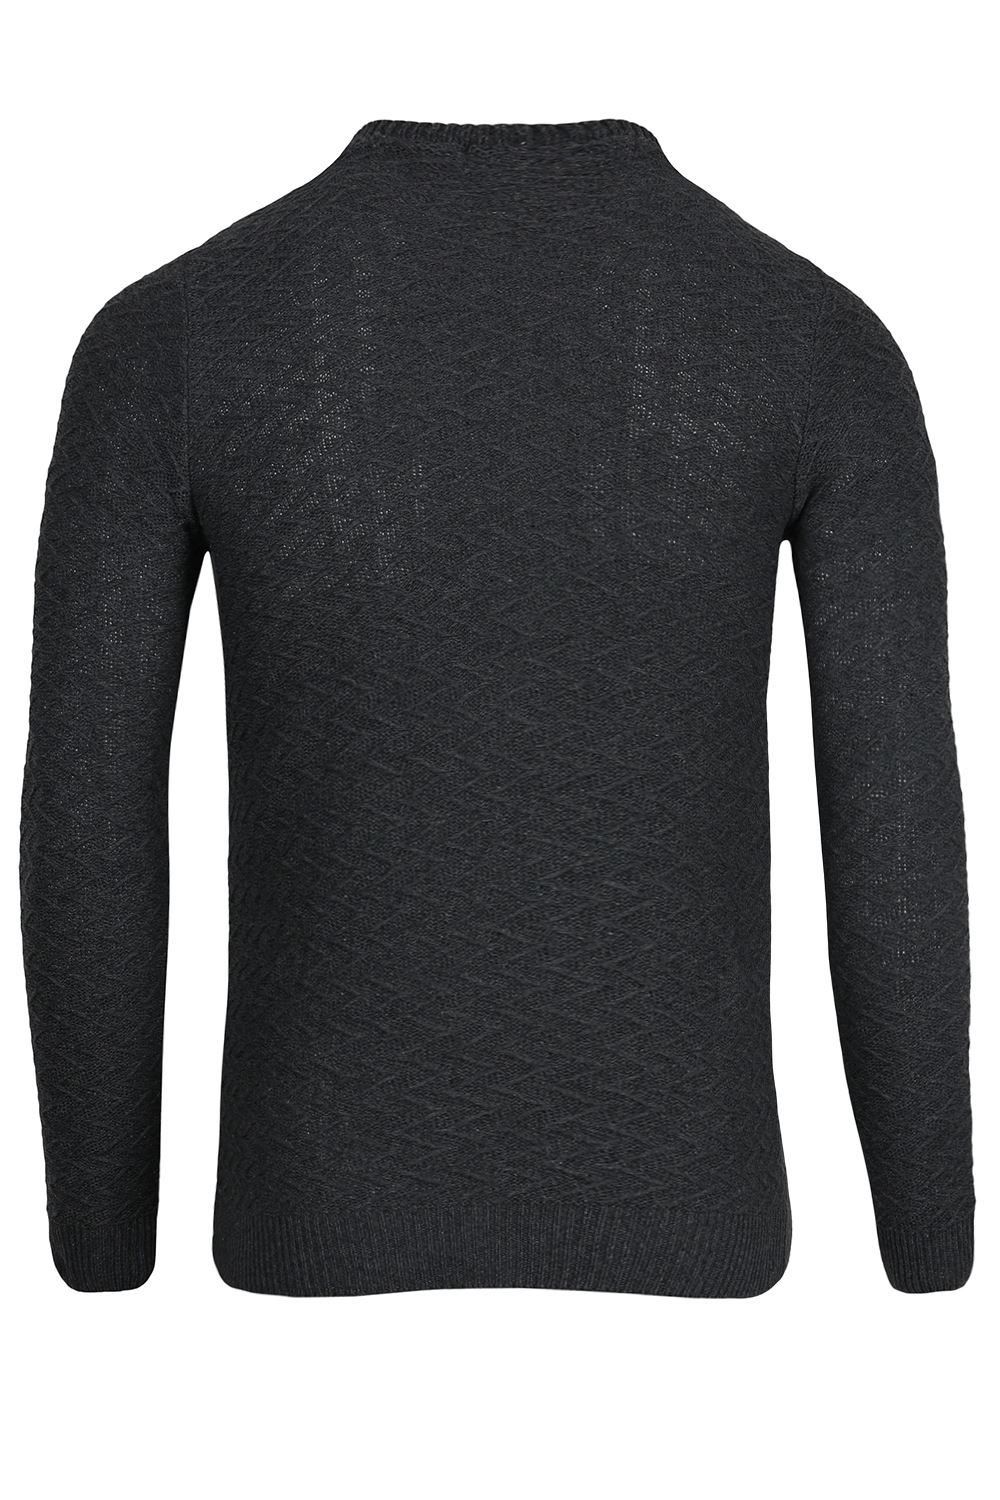 Mens-Long-Sleeve-Branded-Chevron-Crew-Neck-Sweater-Pullover-Warm-Jumper-Tee-Top